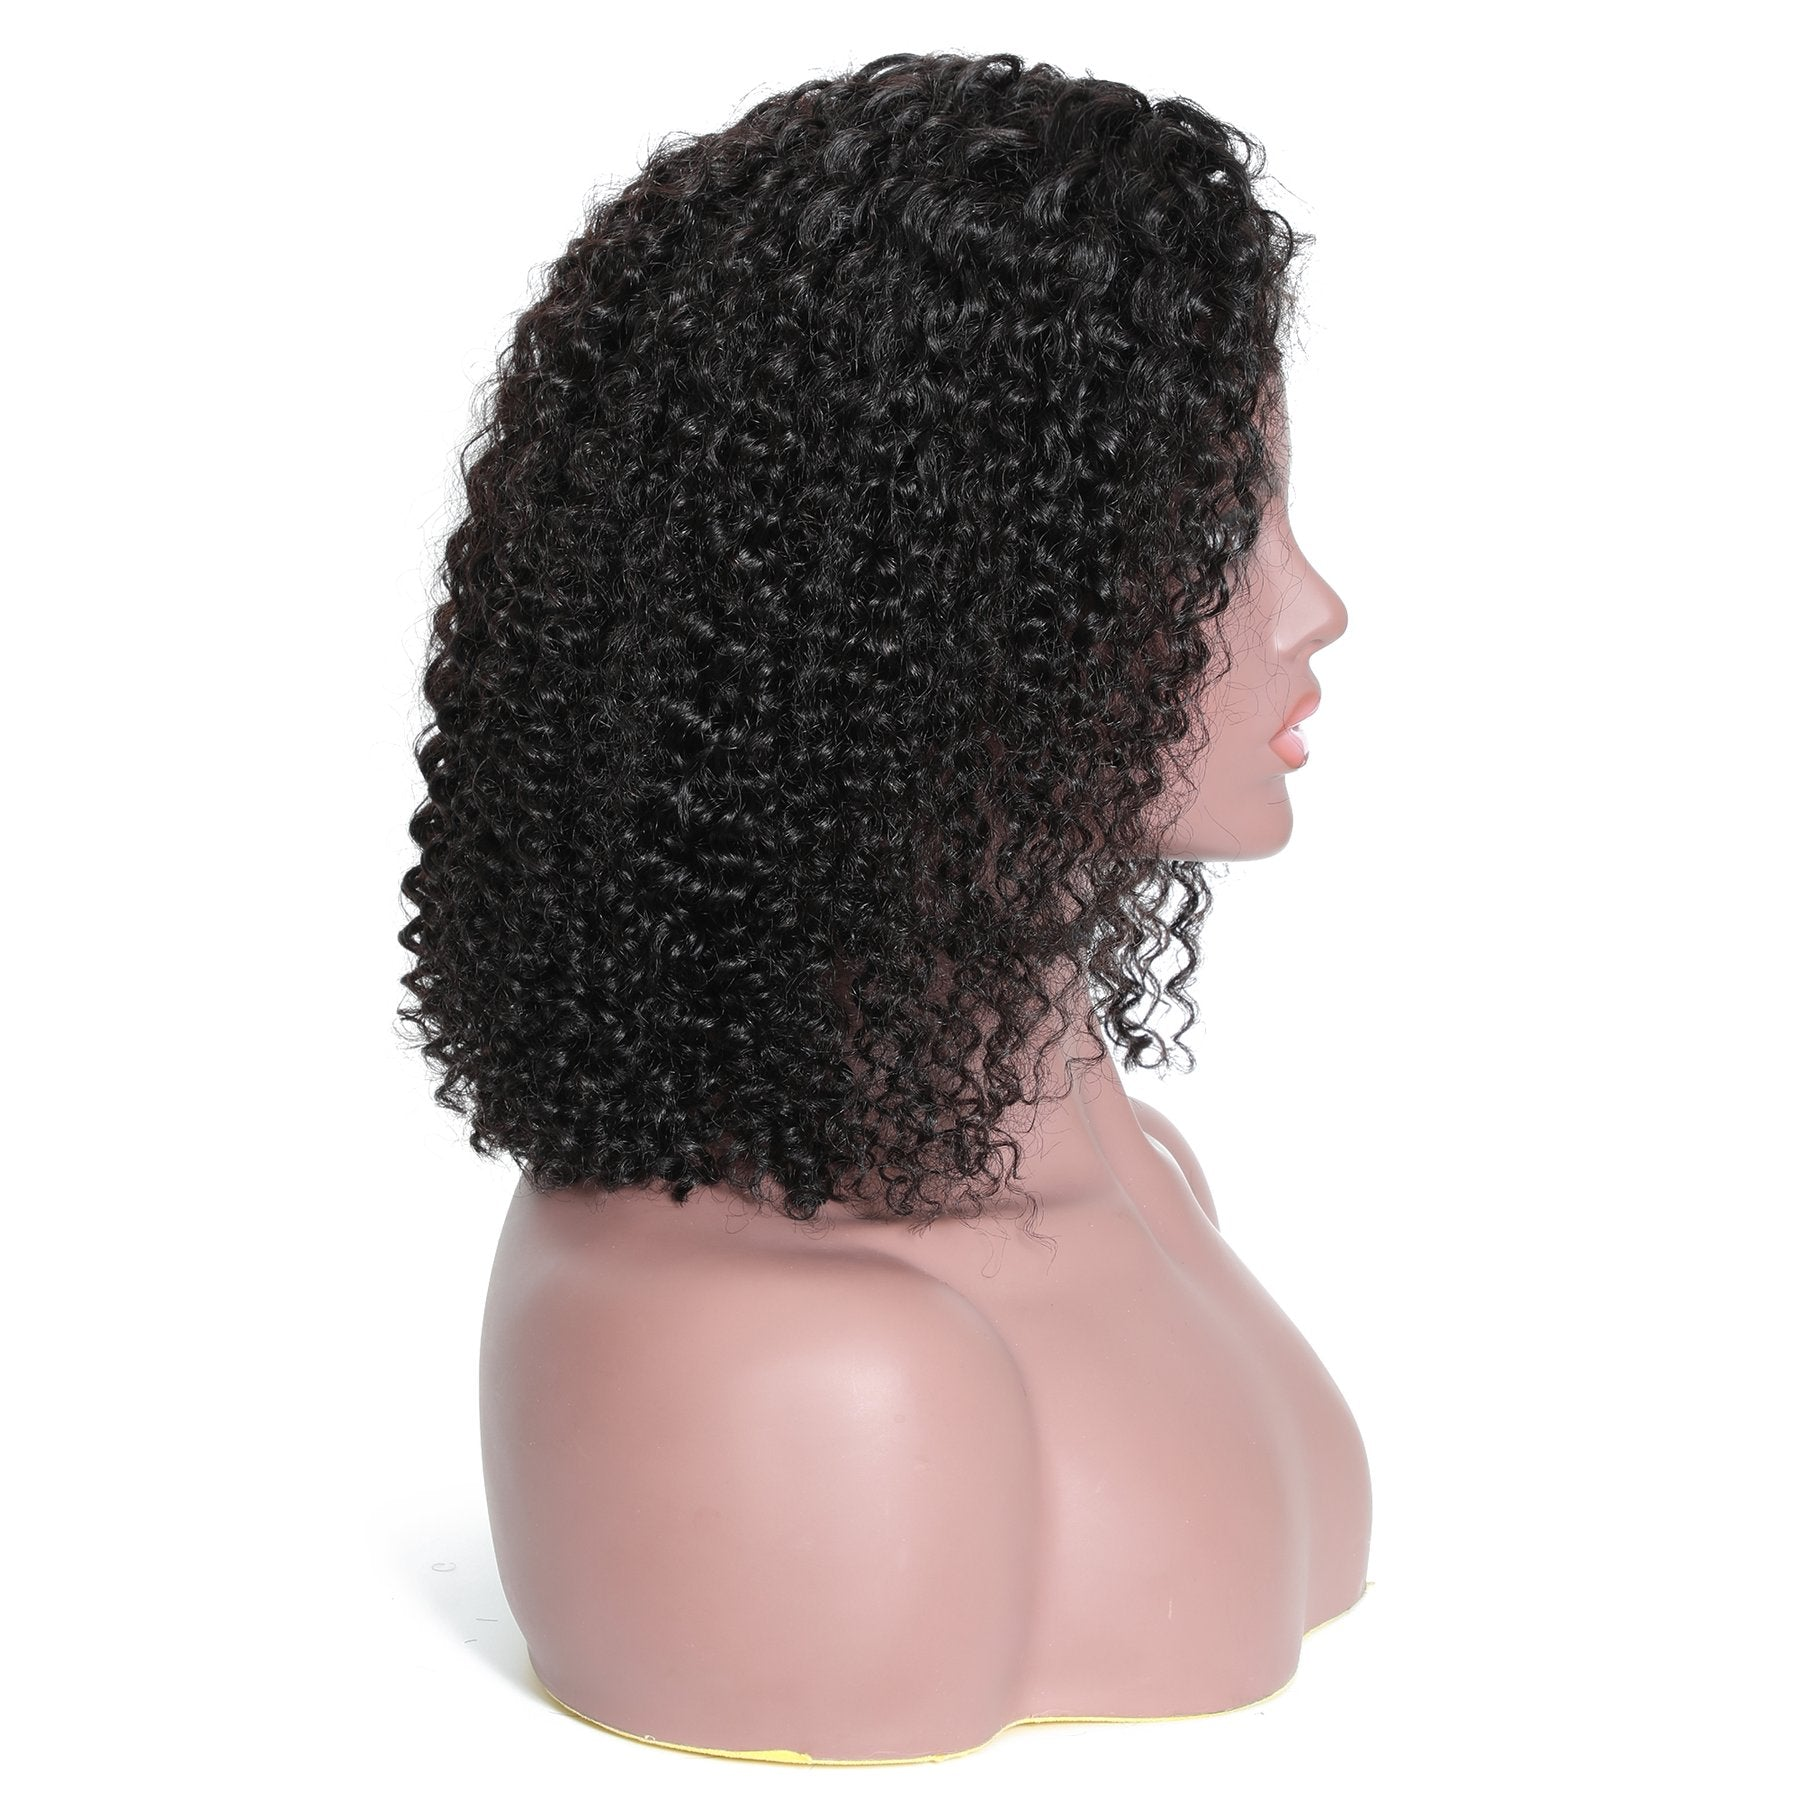 Msbeauty Short Curly Lace Front Human Hair Wig - MSBEAUTY HAIR